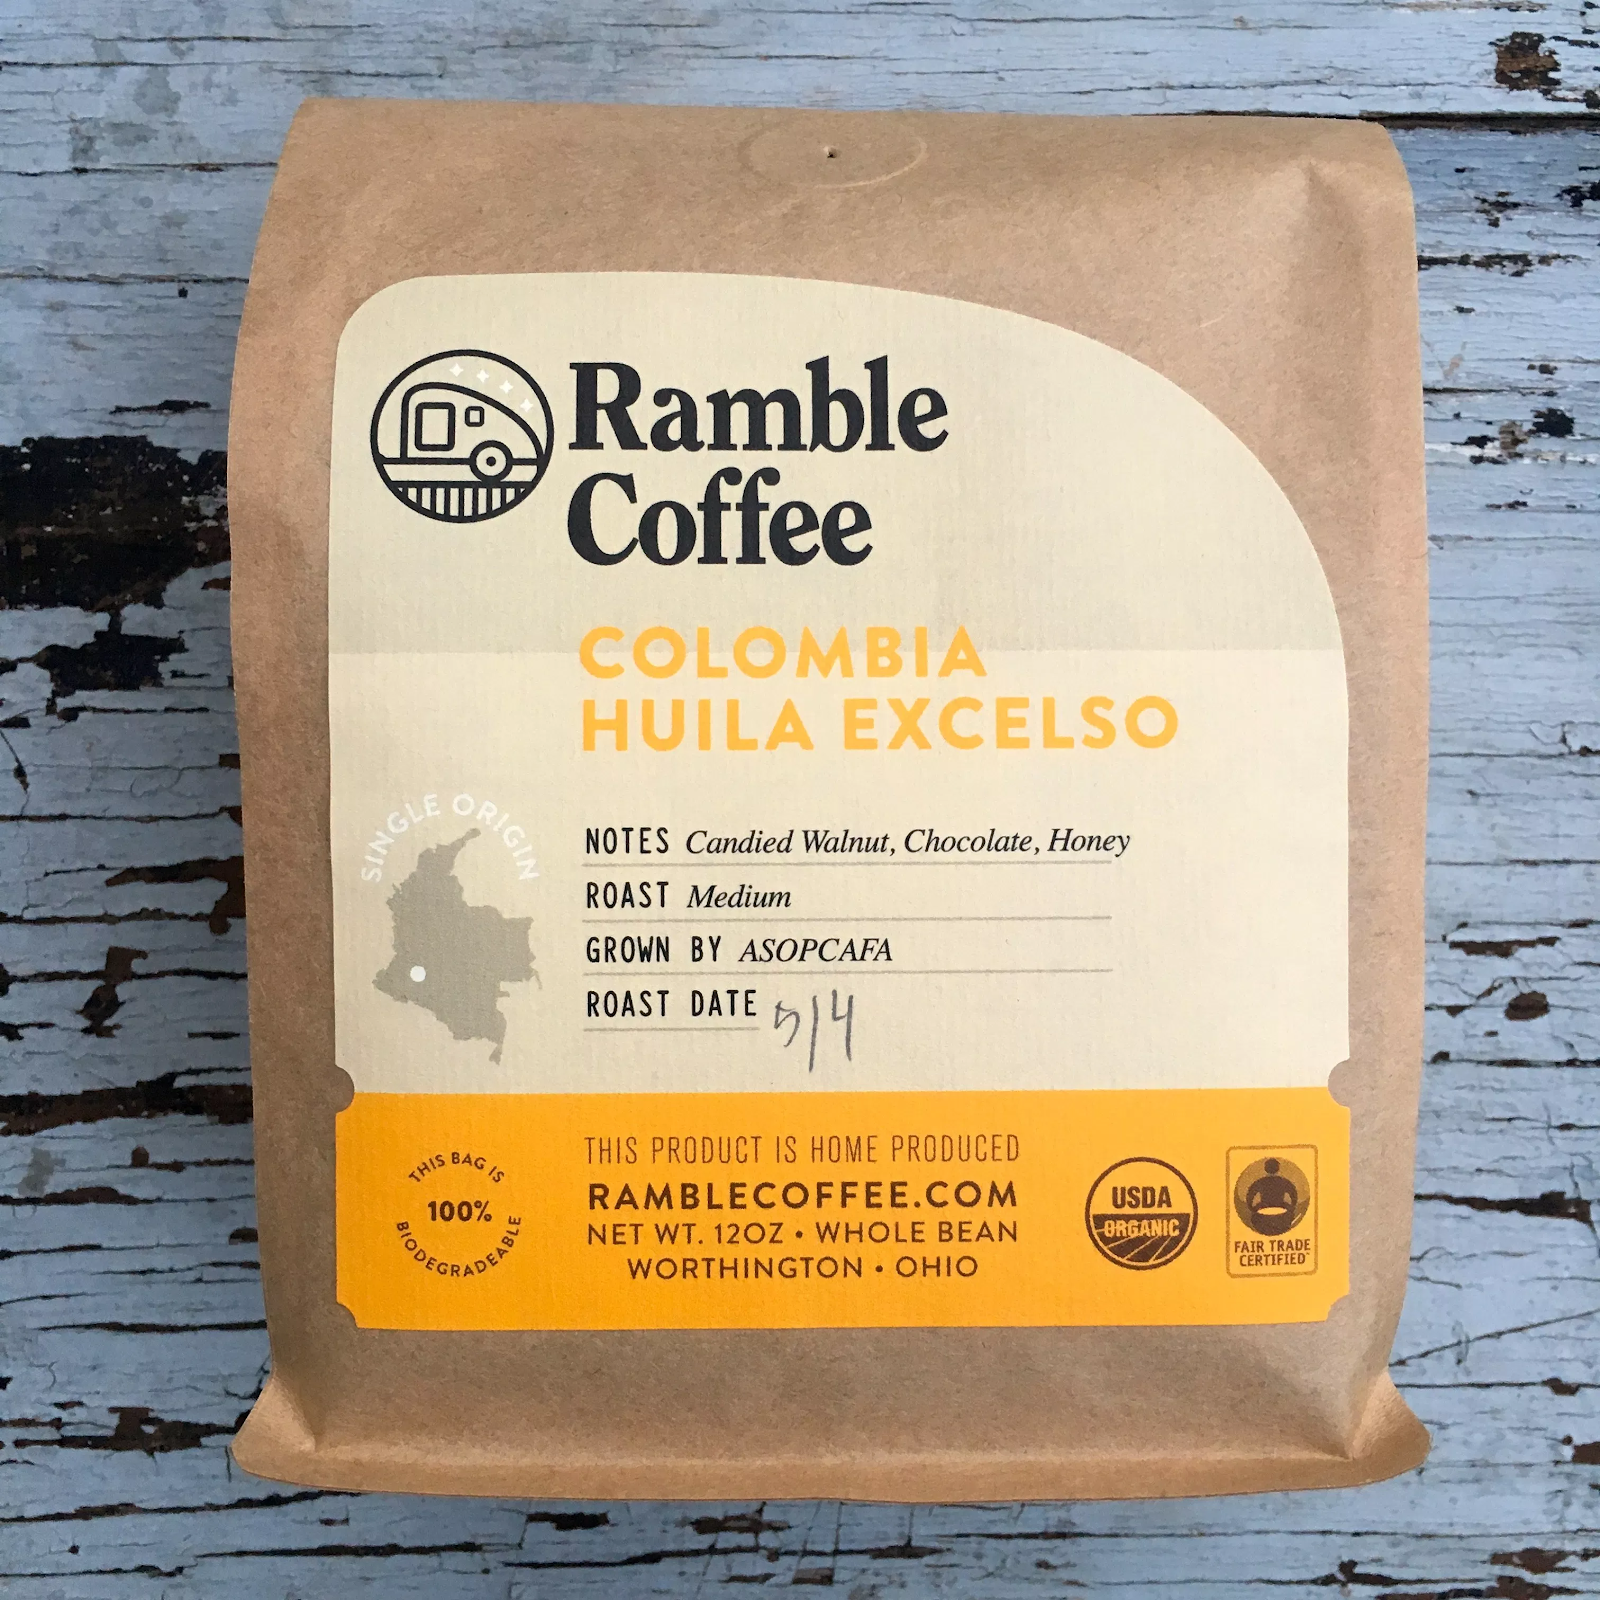 A package of Colombia Huila Excelso coffee from Ramble Coffee